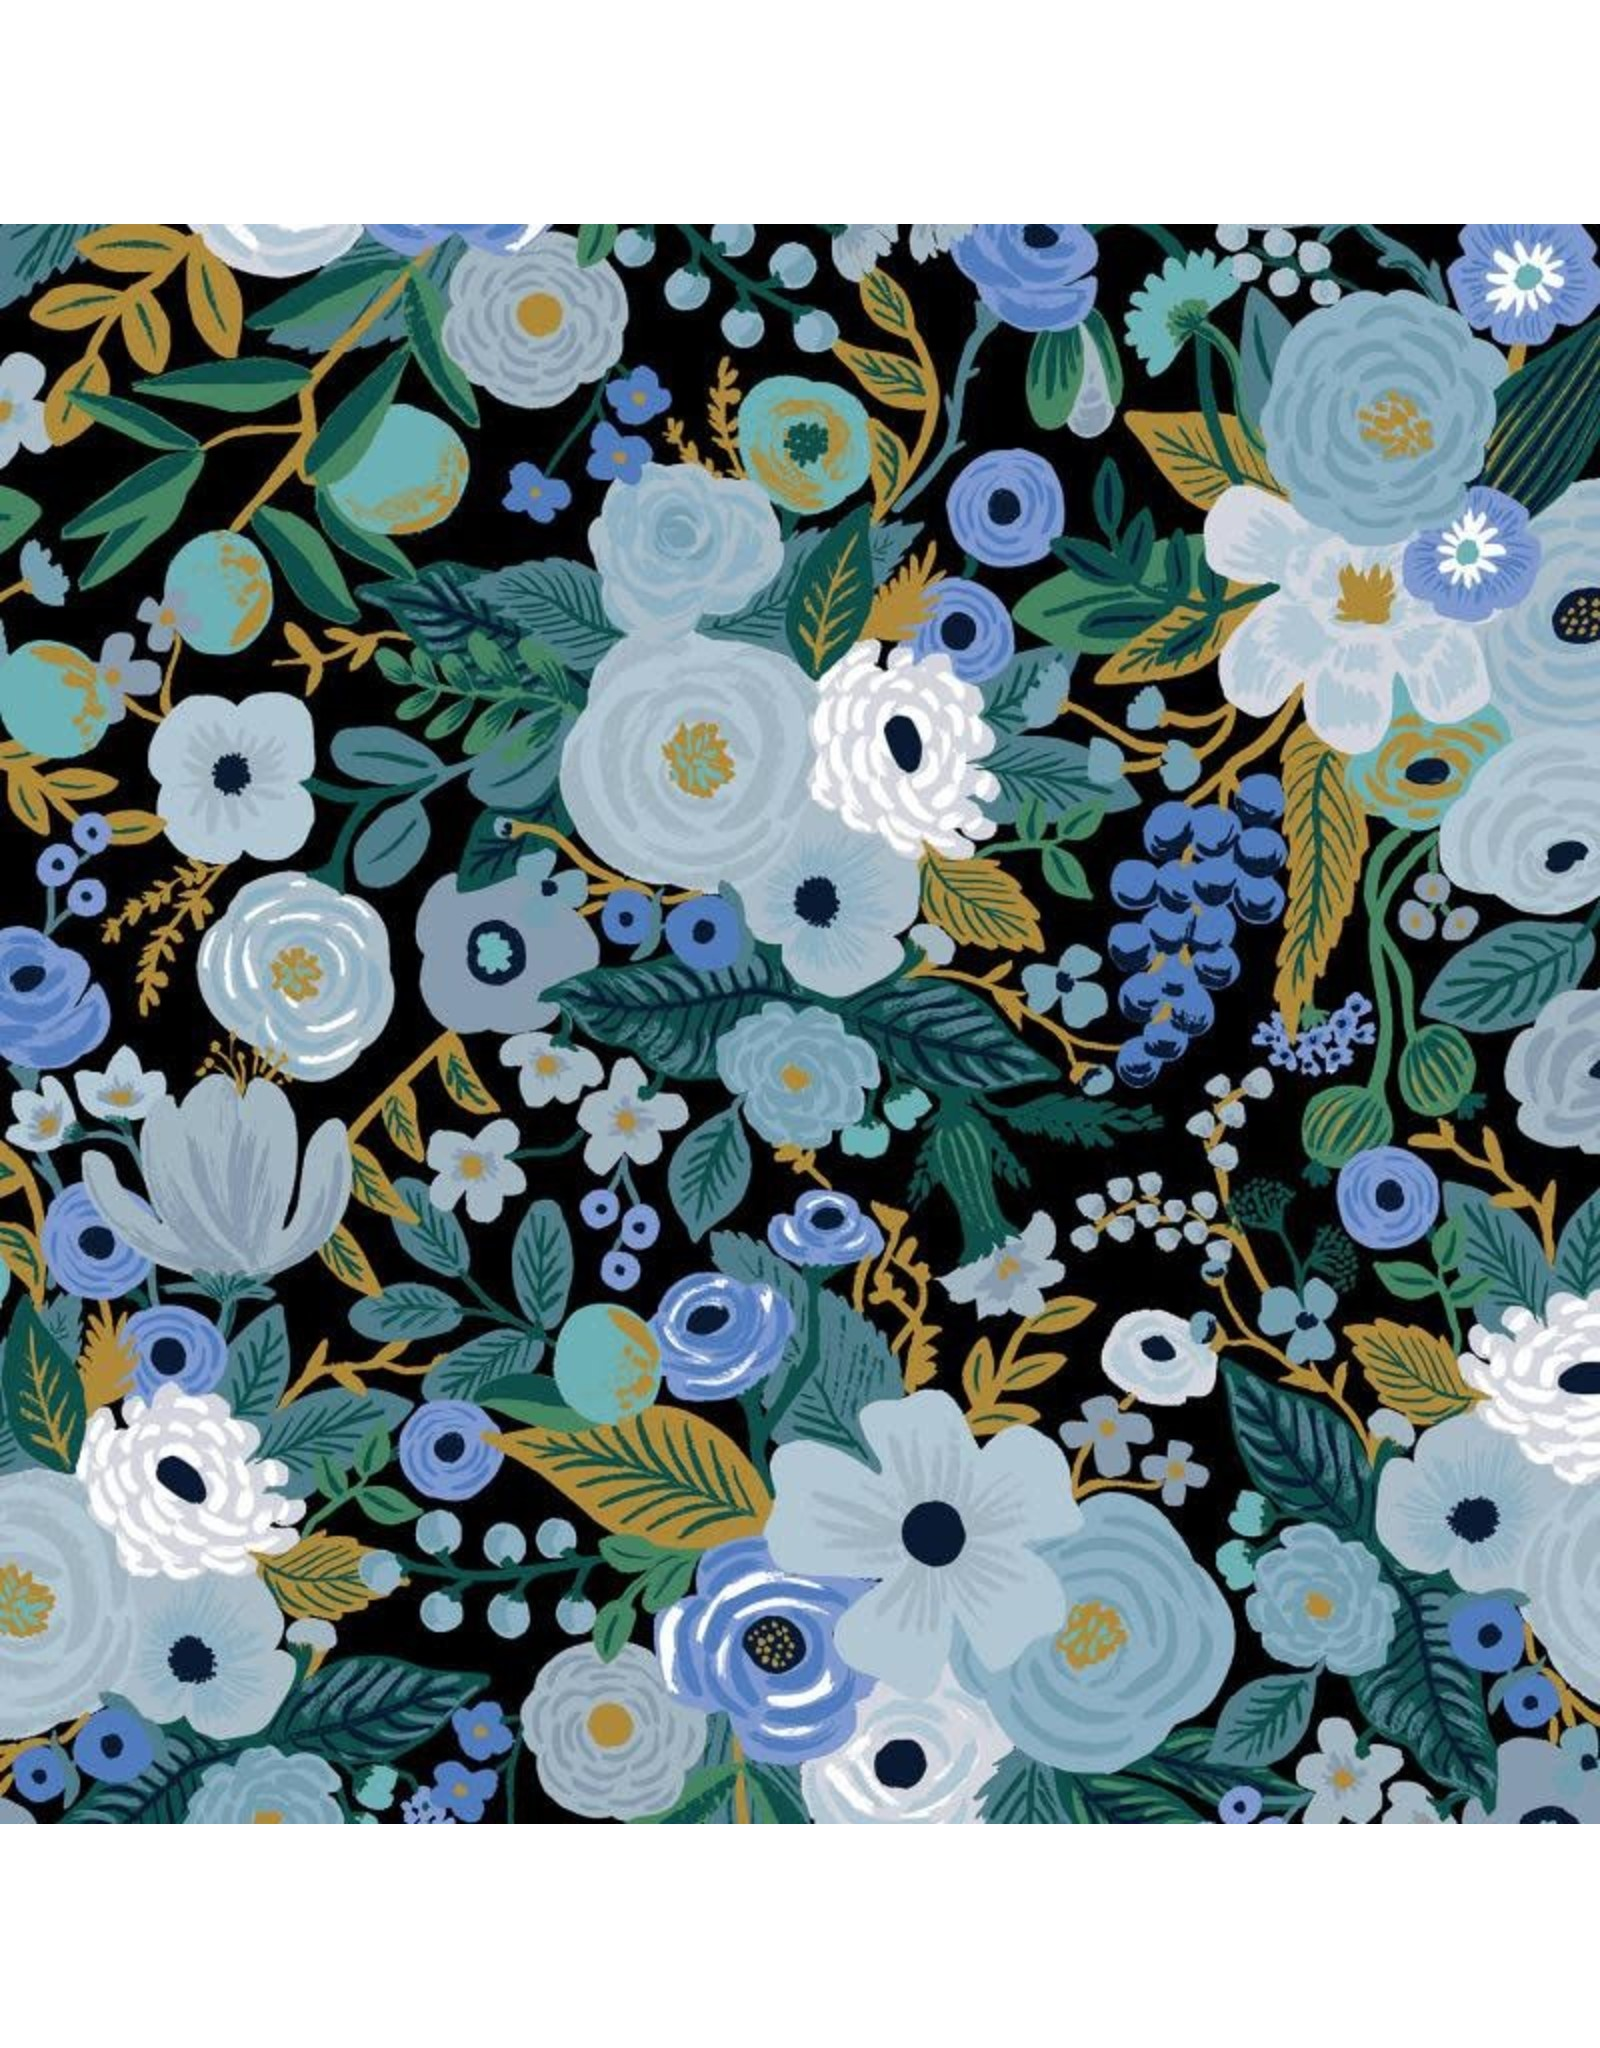 Rifle Paper Co. Garden Party, Garden Party in Blue, Fabric Half-Yards RP100-BL5